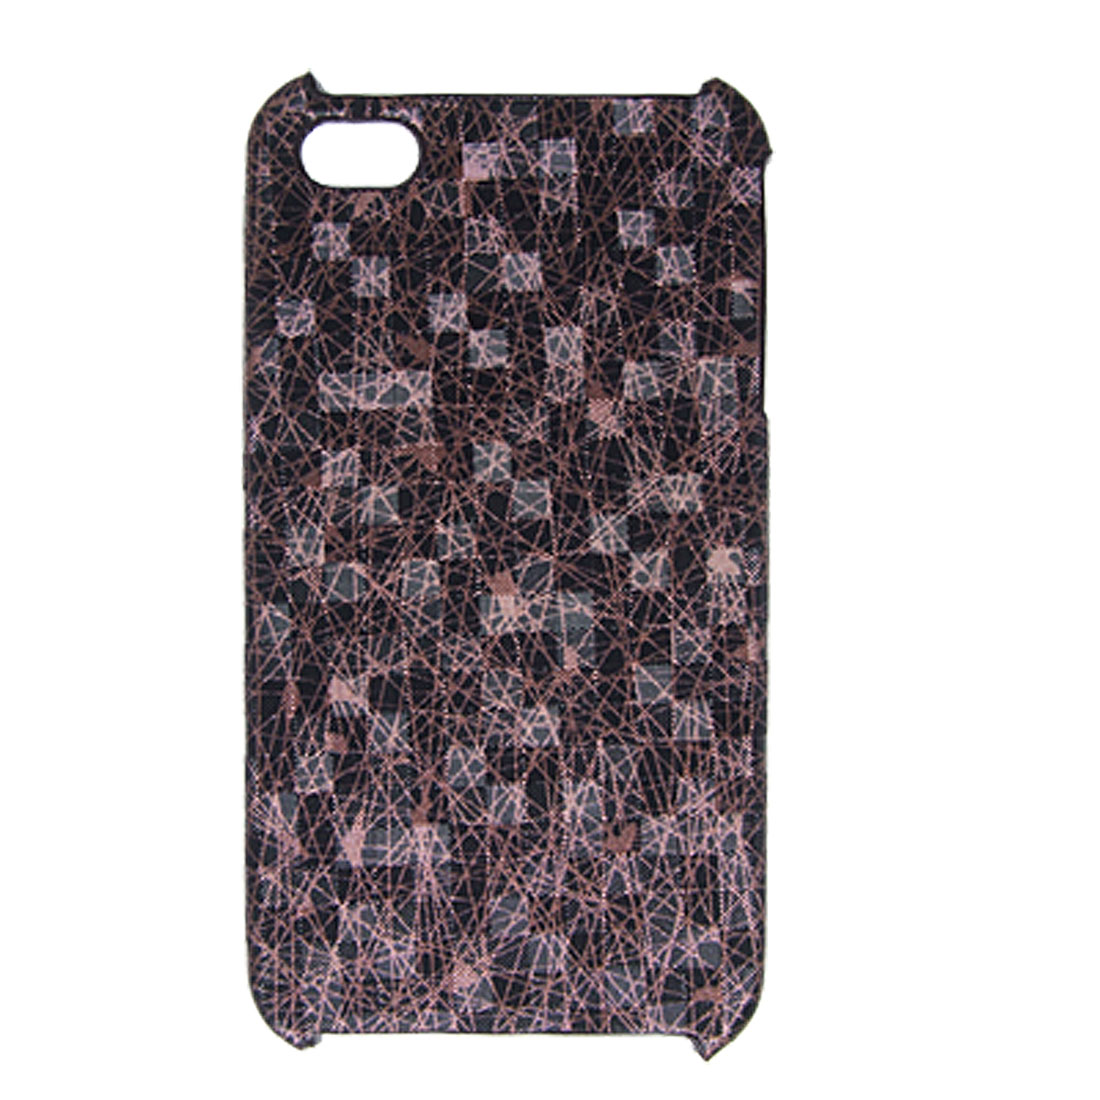 Hard Faux Leather Coated Case Glitter Cover for iPhone 4 4G